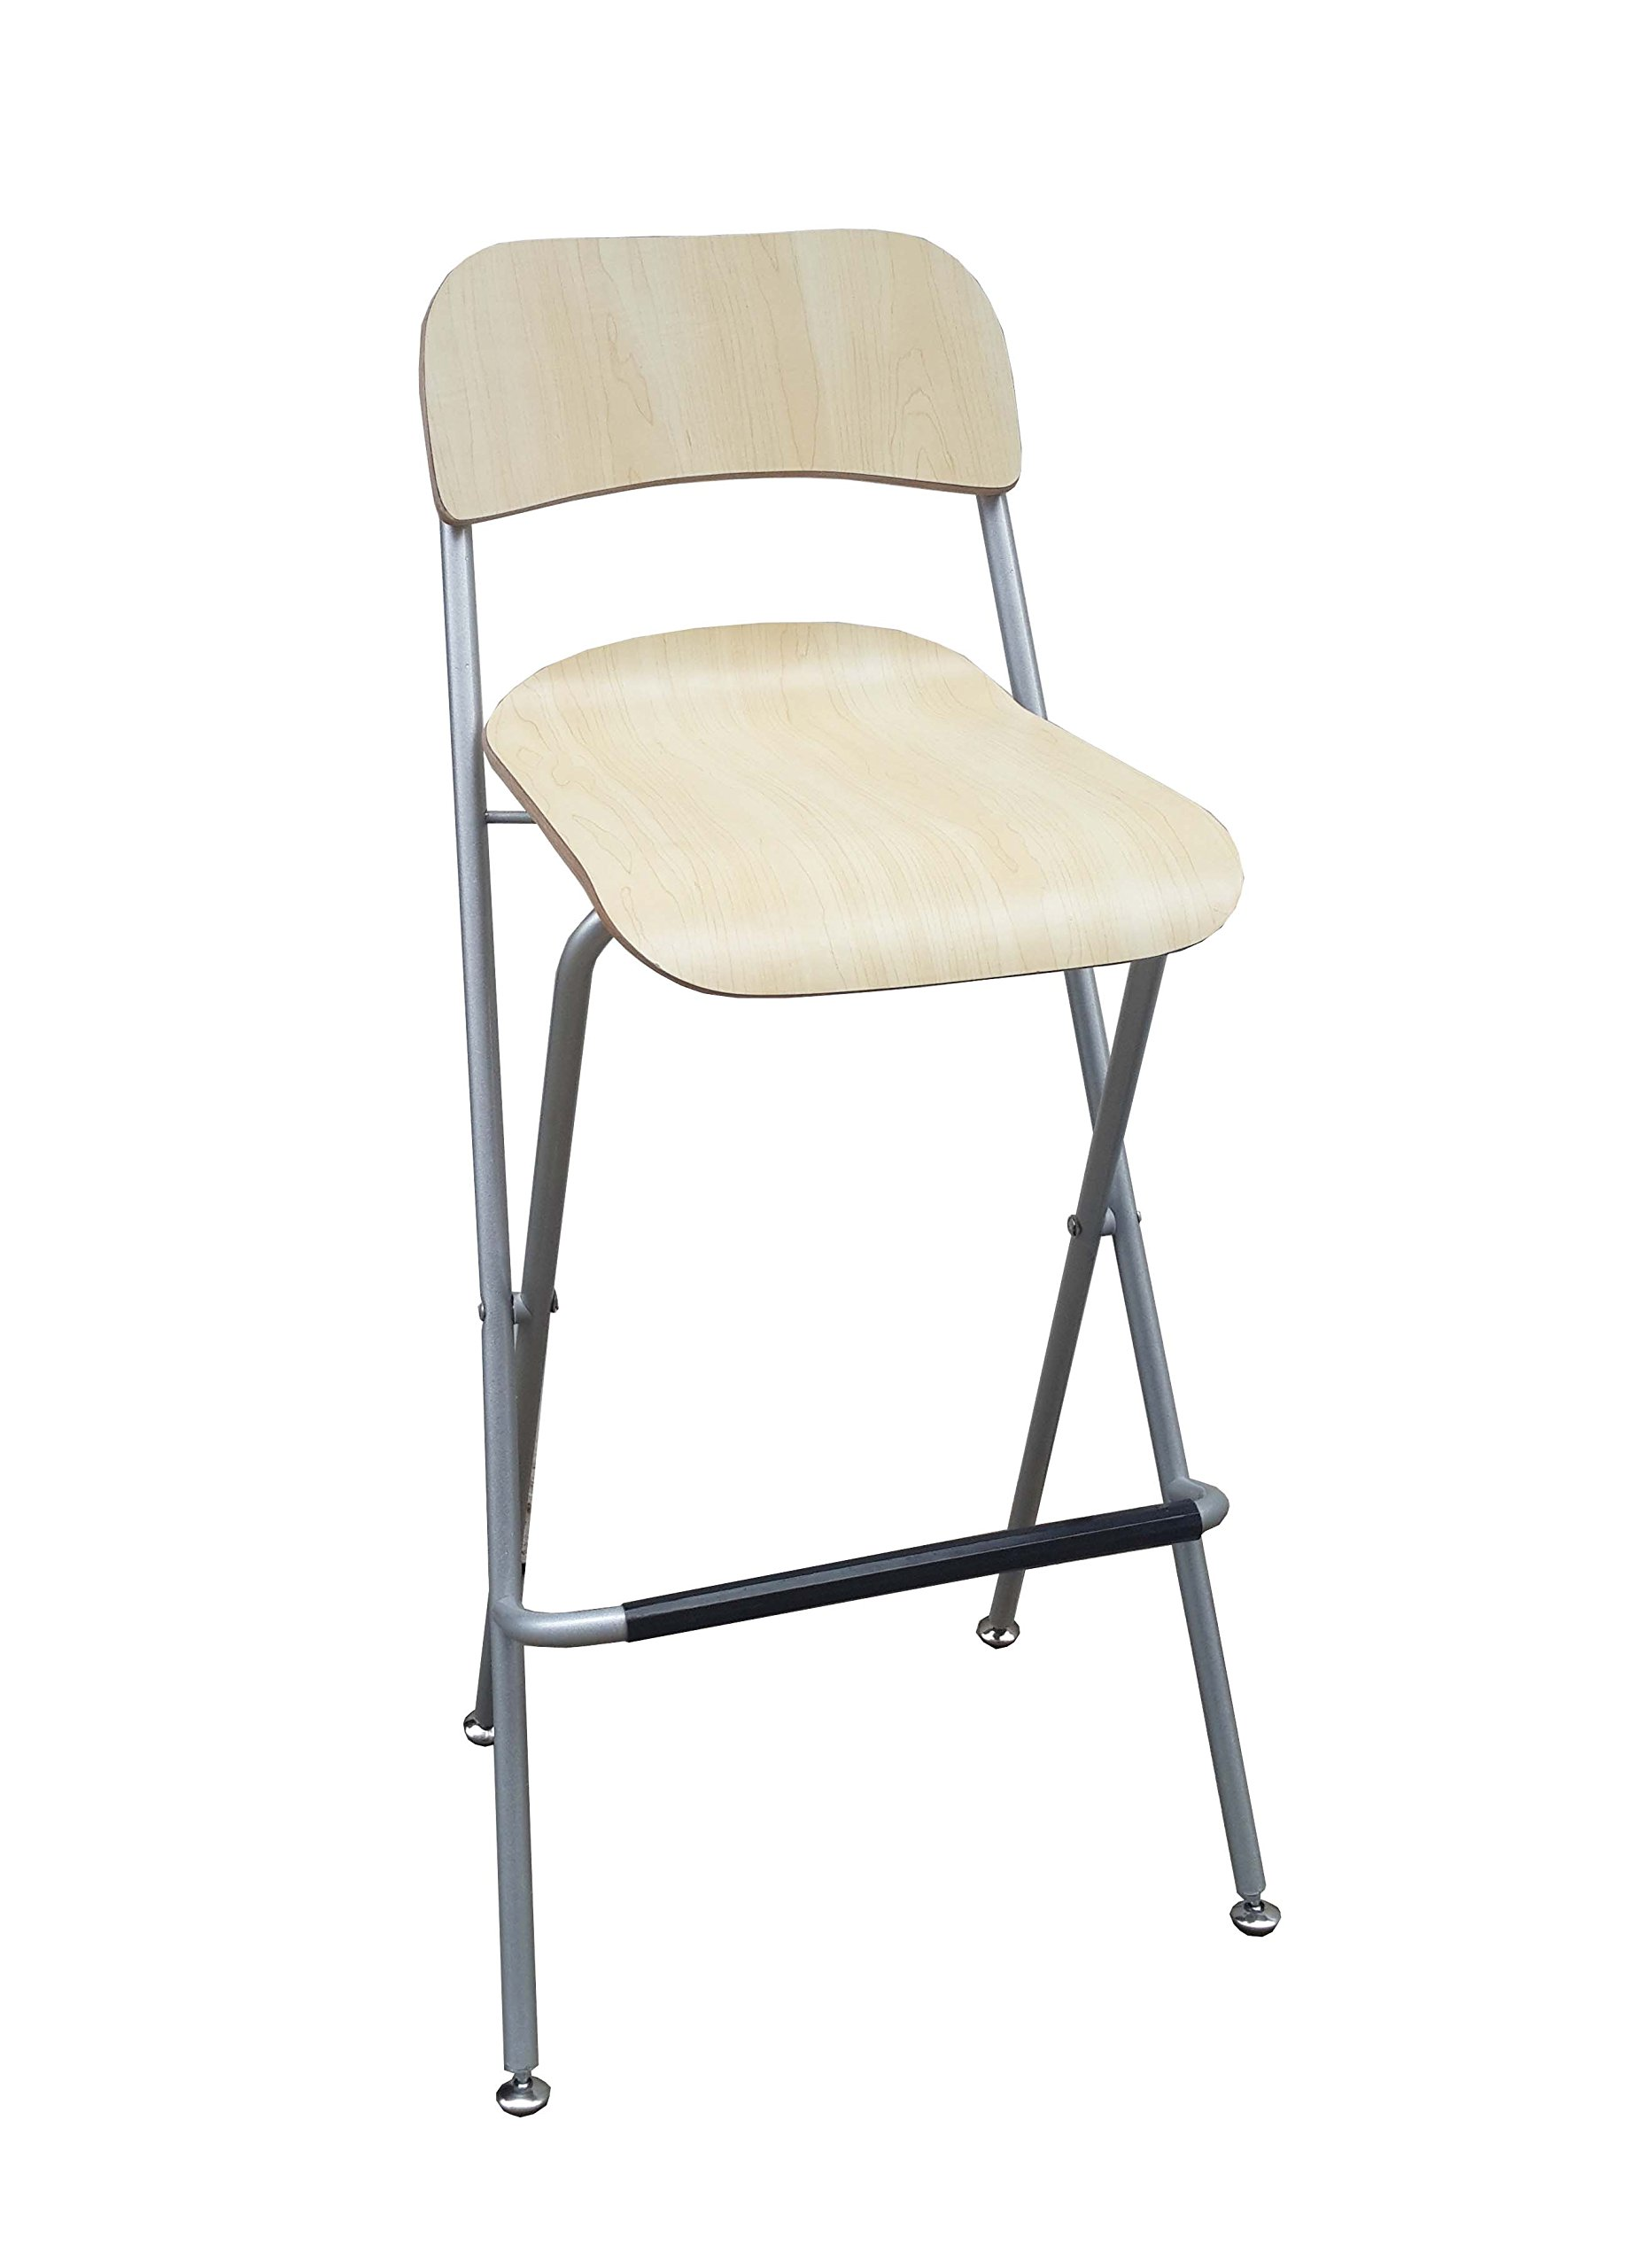 Fixture Displays Folding High Chair Bar Stool Folding Wood Metal Chair Two-Pack 11036 by FixtureDisplays (Image #1)